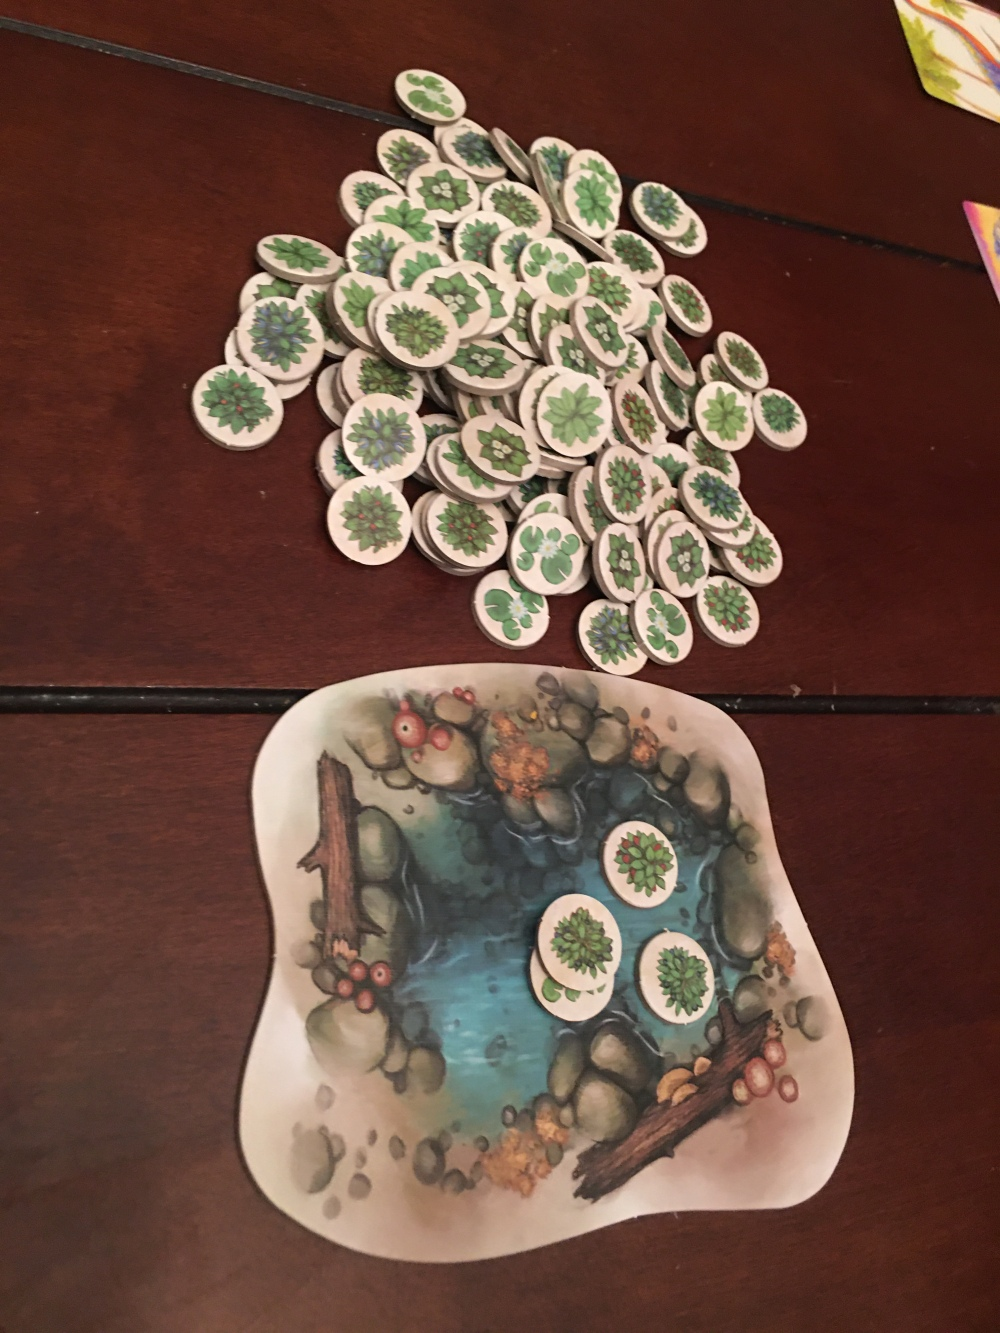 Watering hole game piece with leafy food tokens.